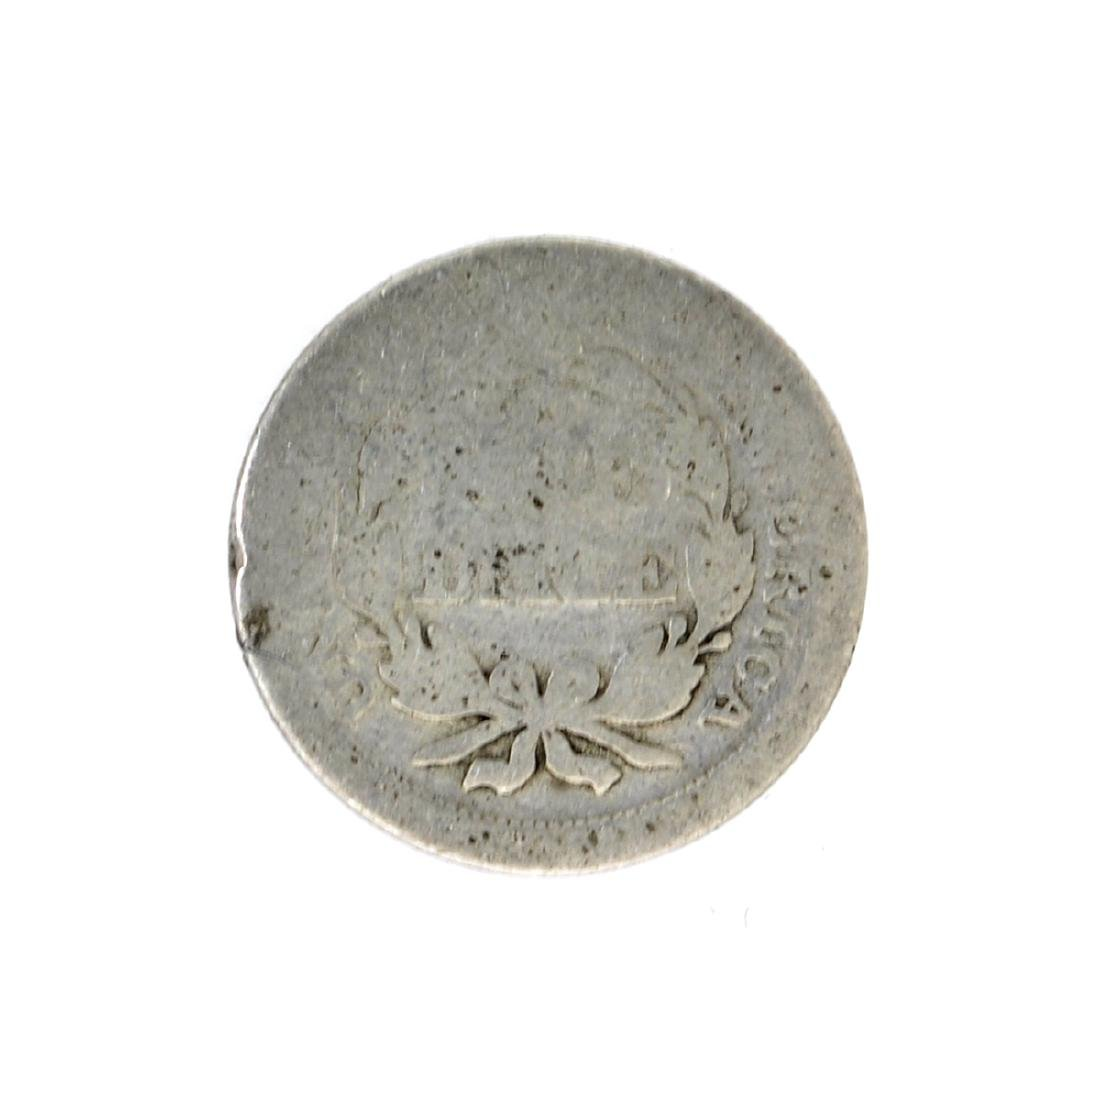 1853 Liberty Seated Arrows At Date Dime Coin - 2